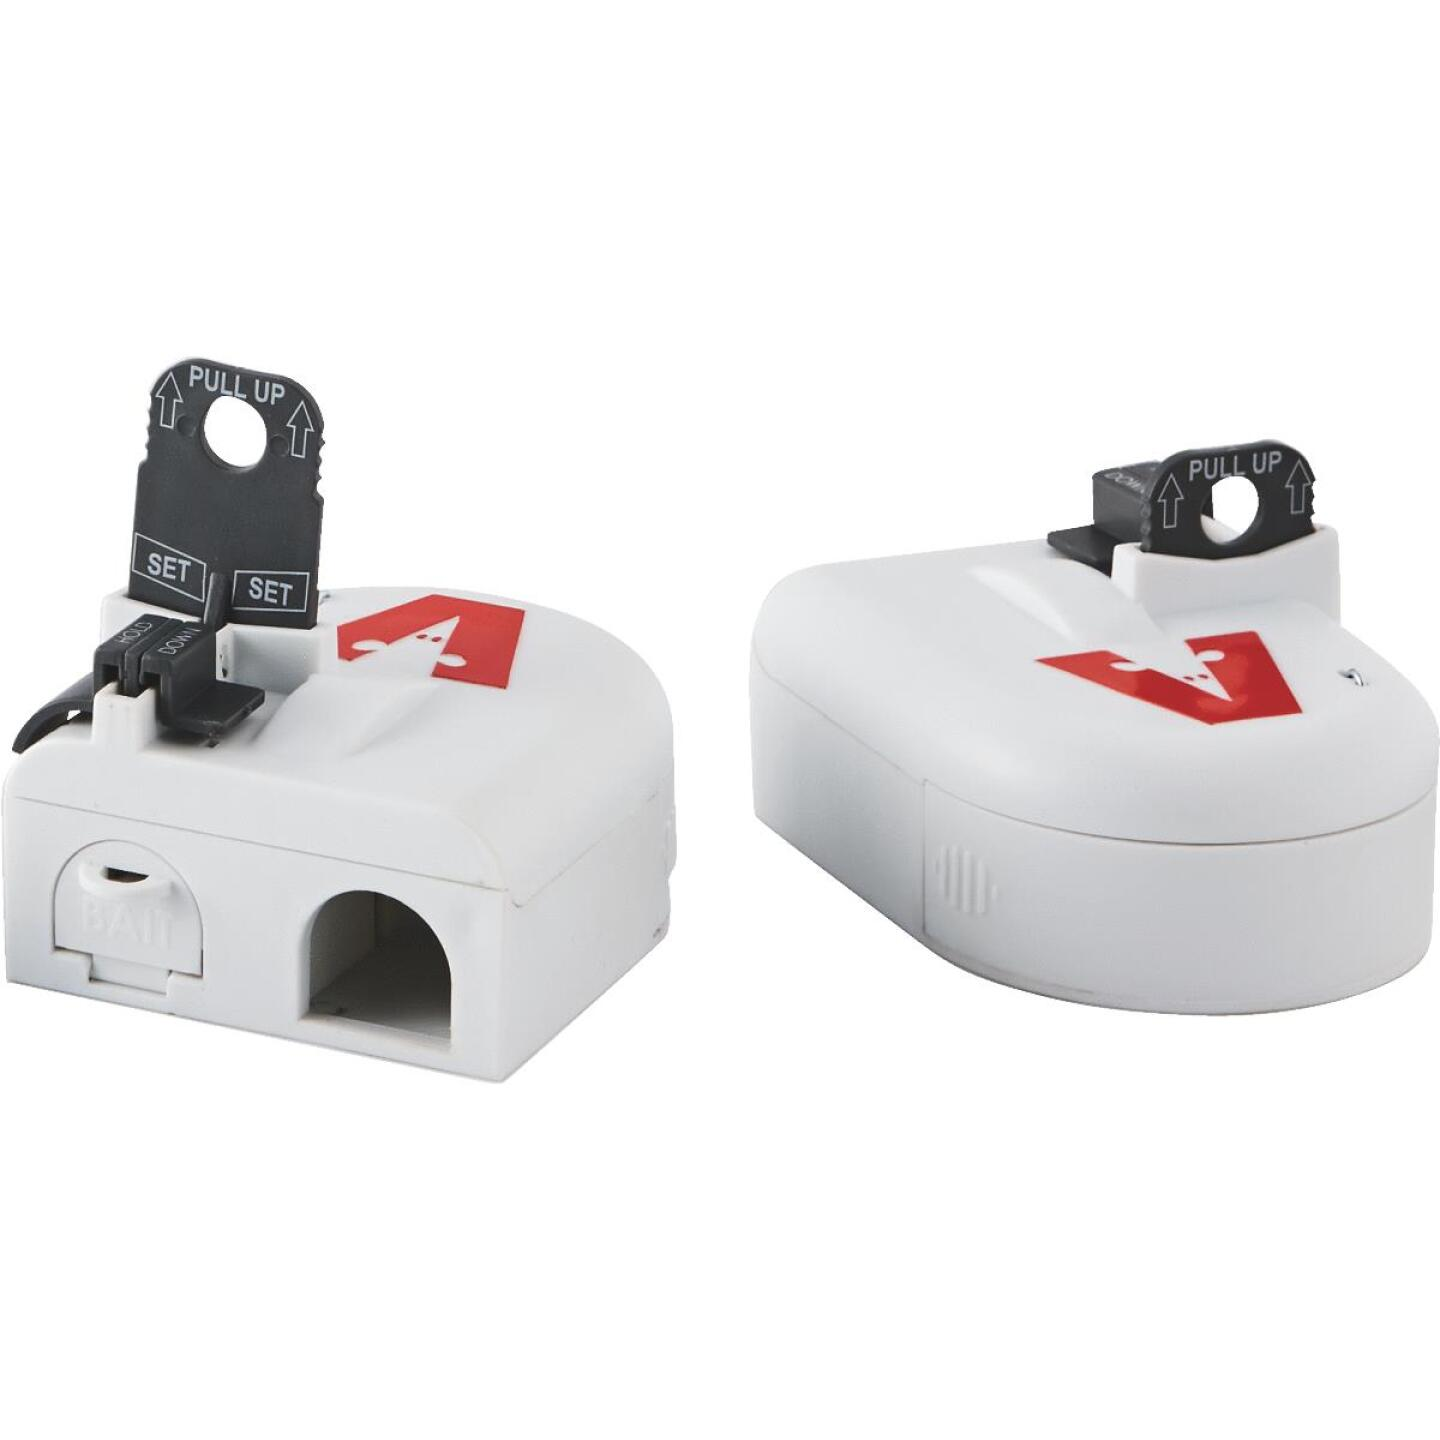 Victor Kill And Seal Mechanical Hygienic Mouse Trap (2-Pack) Image 2